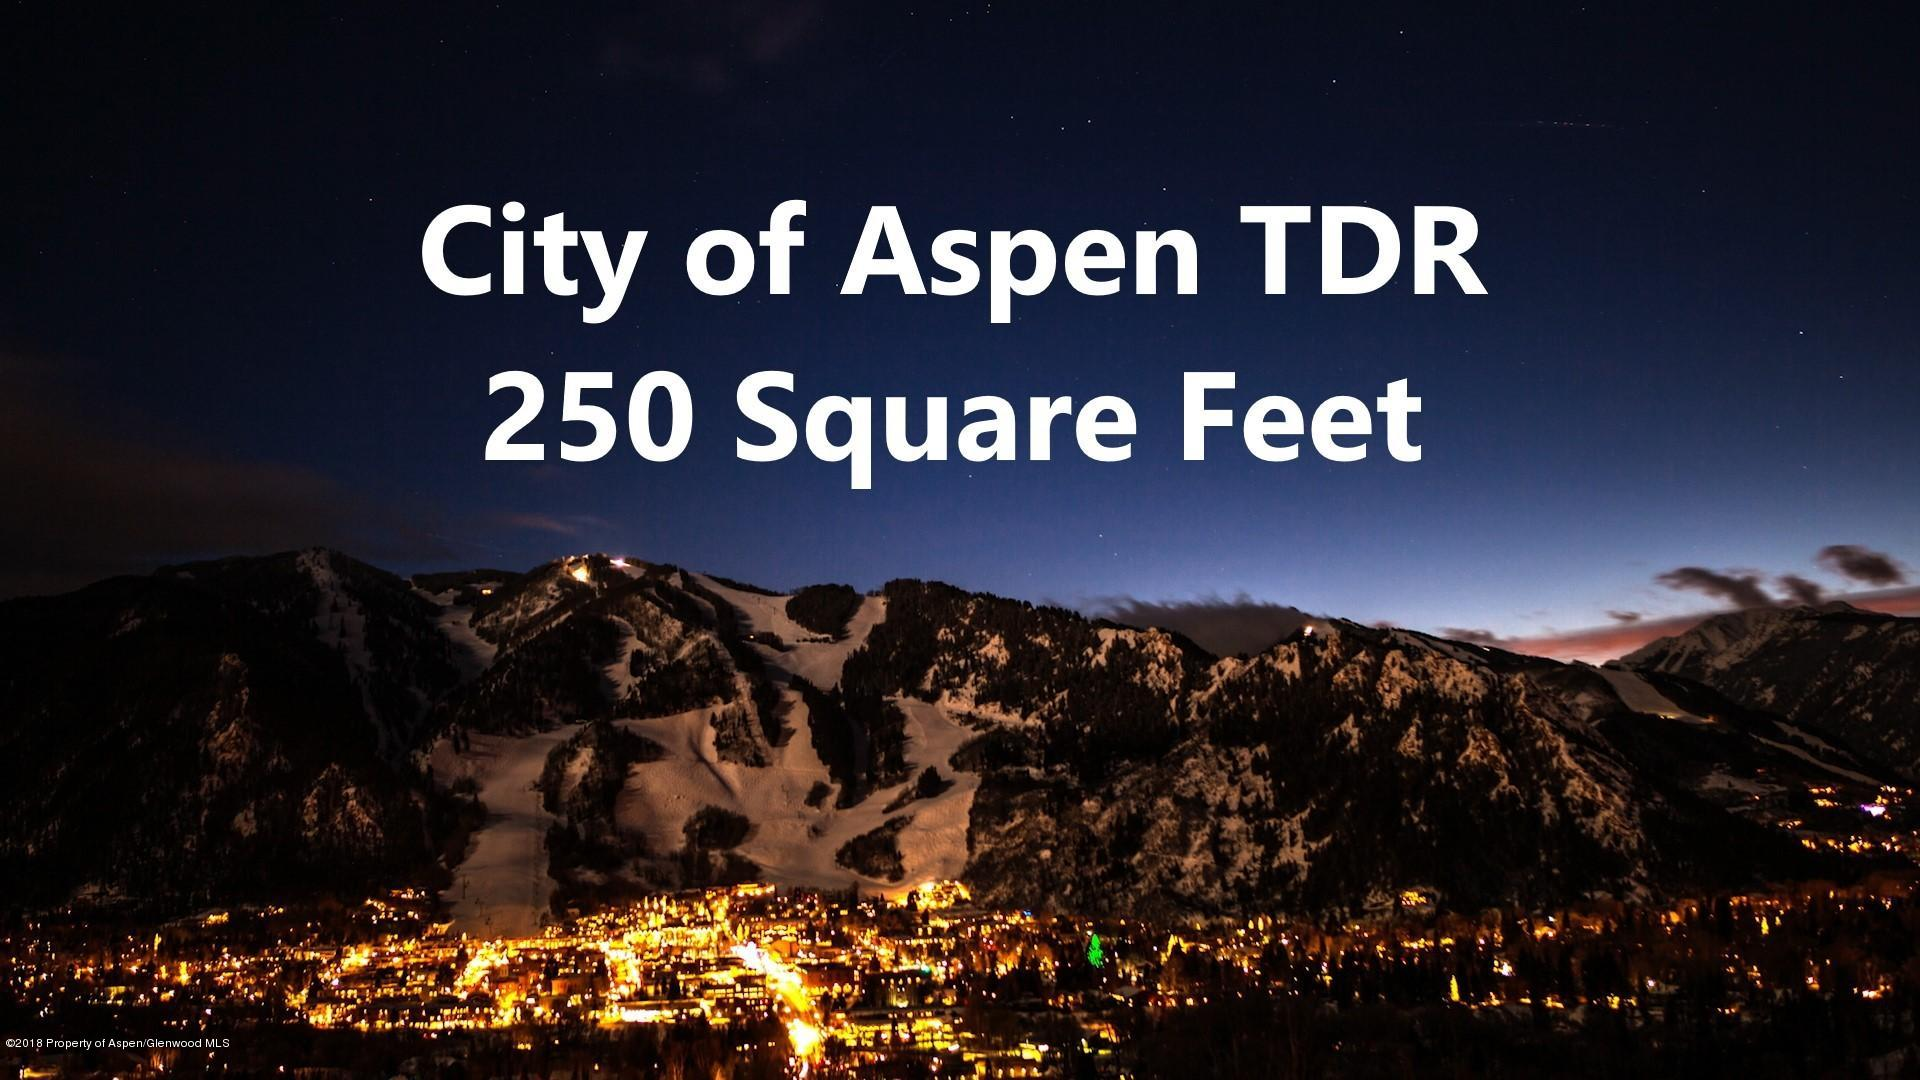 TDR City City of Aspen - Central Core, Colorado